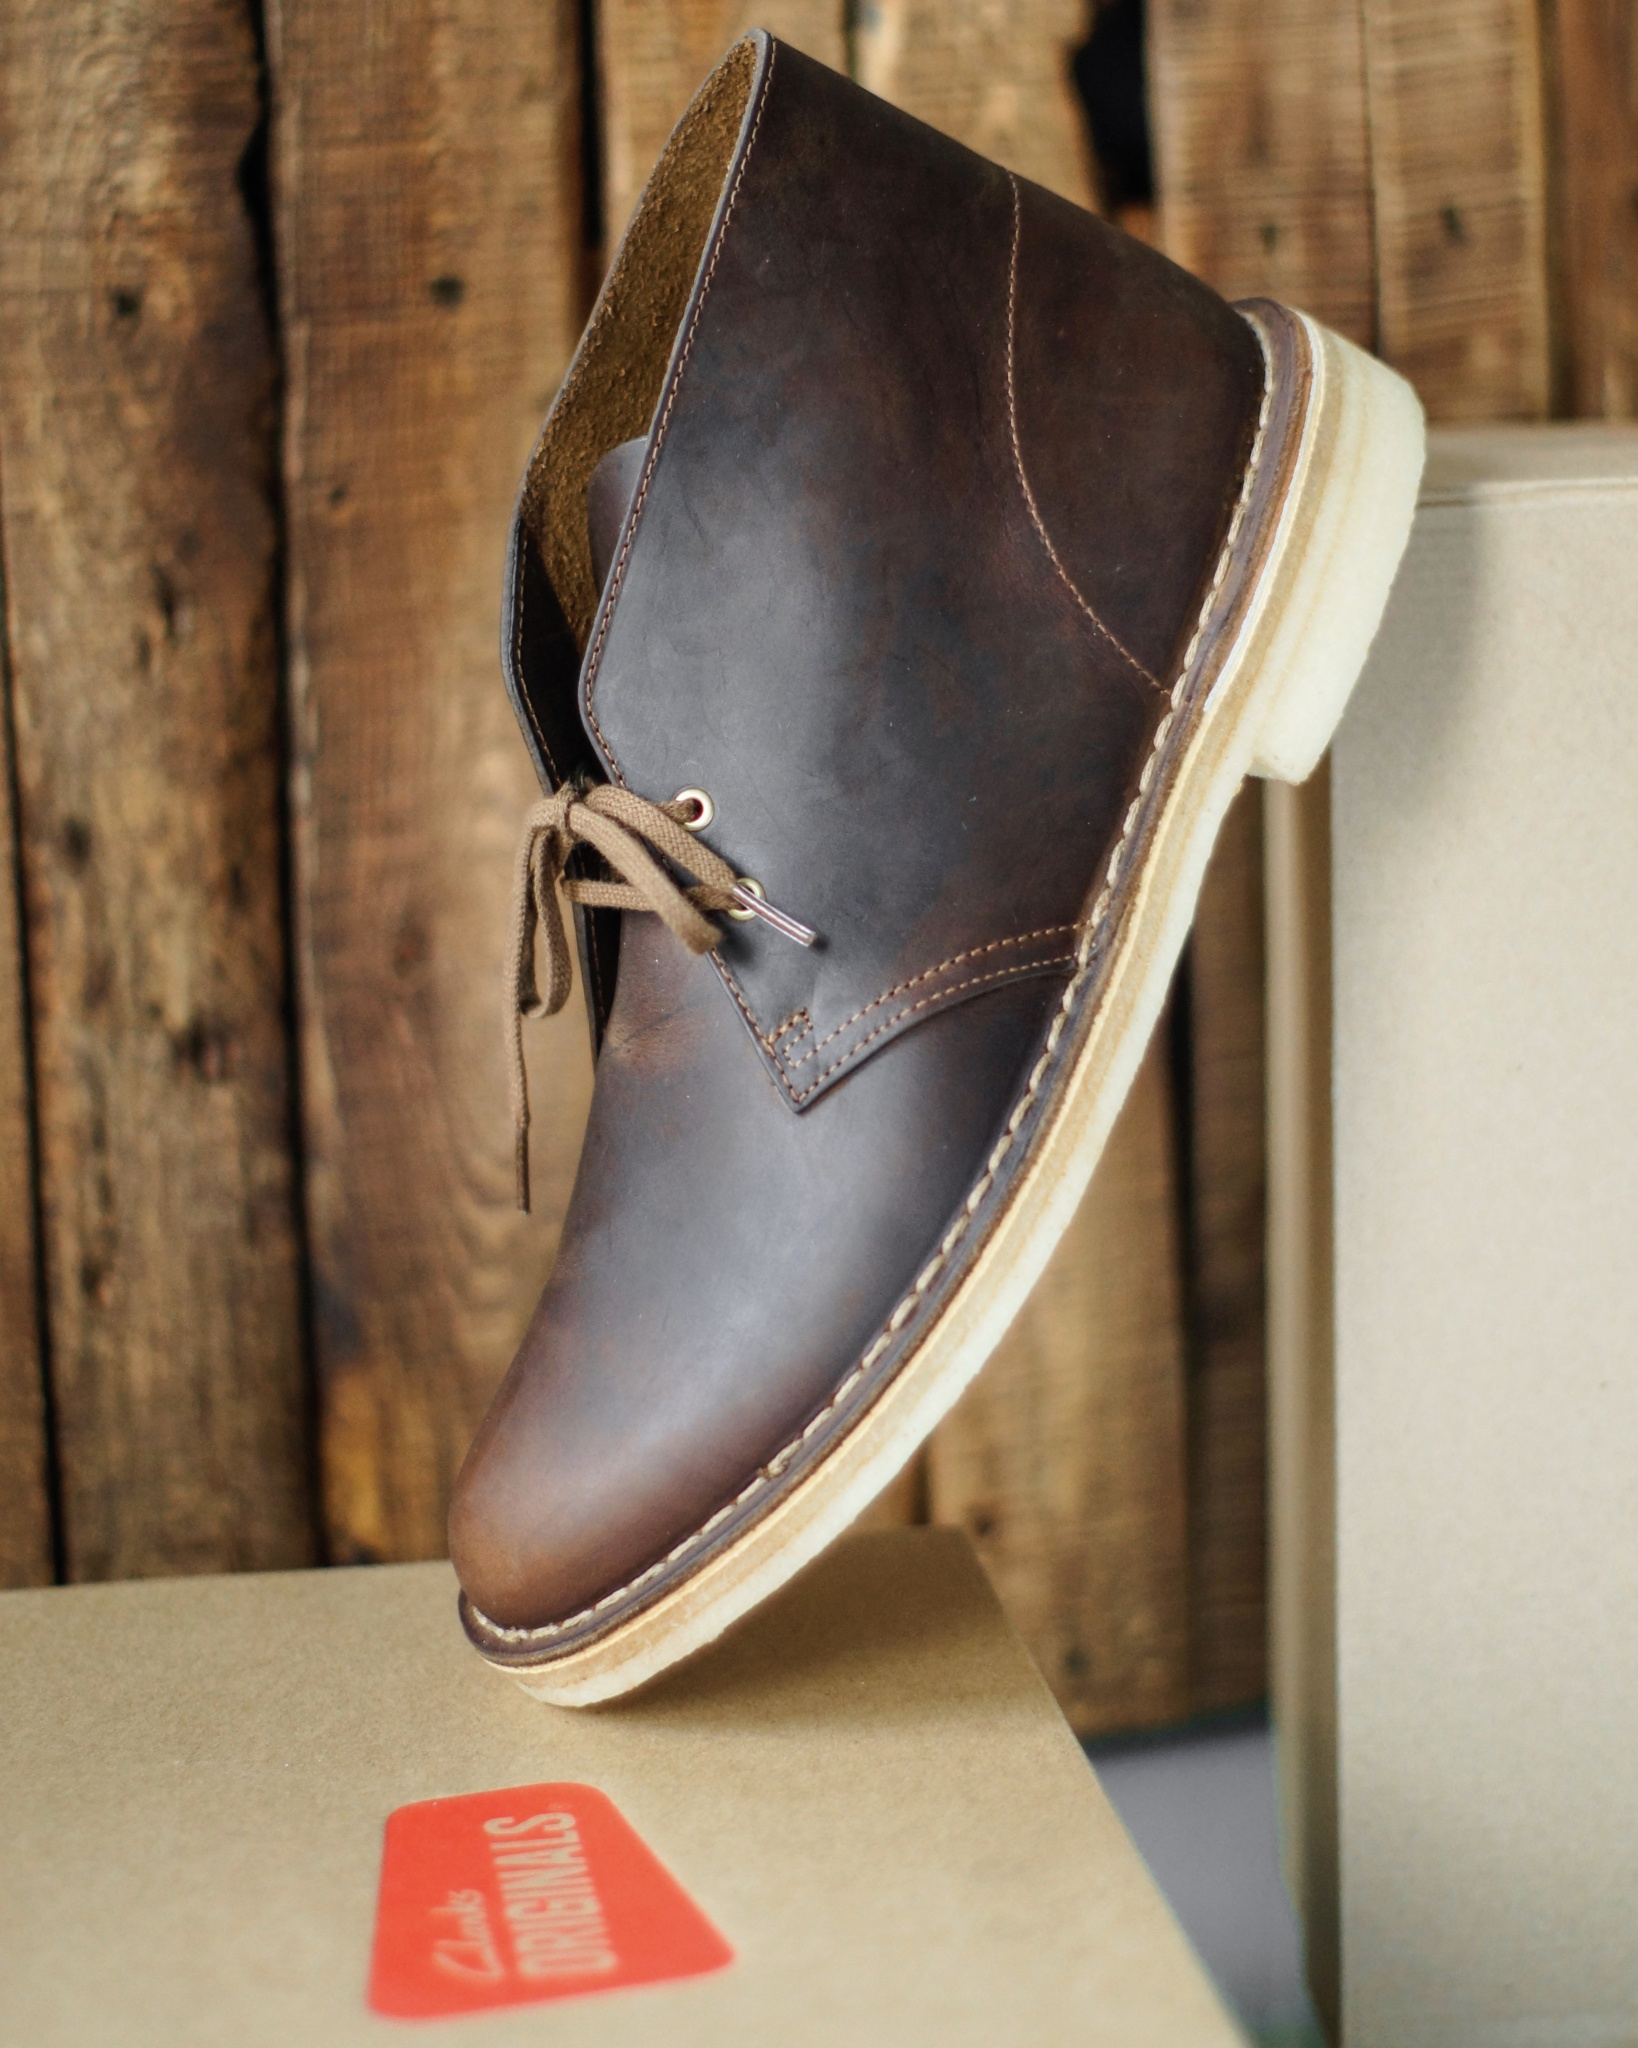 The Original Desert Boot by Clarks - Clarks Desert Boot from Clarks Originals Collection - Shoes - Beeswax & Leather - TheKillerLook.com - The Killer Look